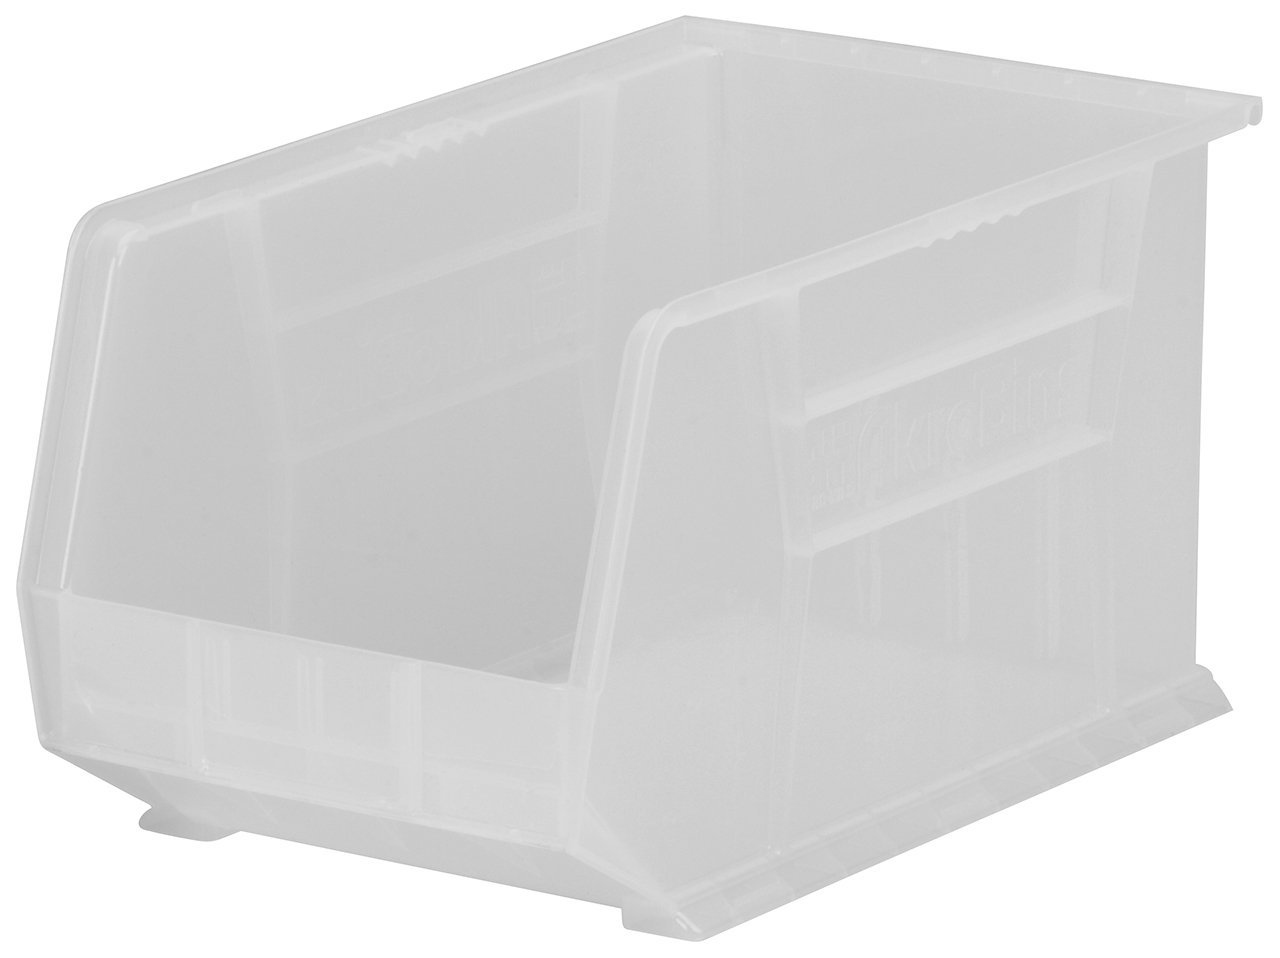 Akro-Mils 30260 Plastic Storage Stacking AkroBin, 18-Inch by 11-Inch by 10-Inch, Clear, Case of 6